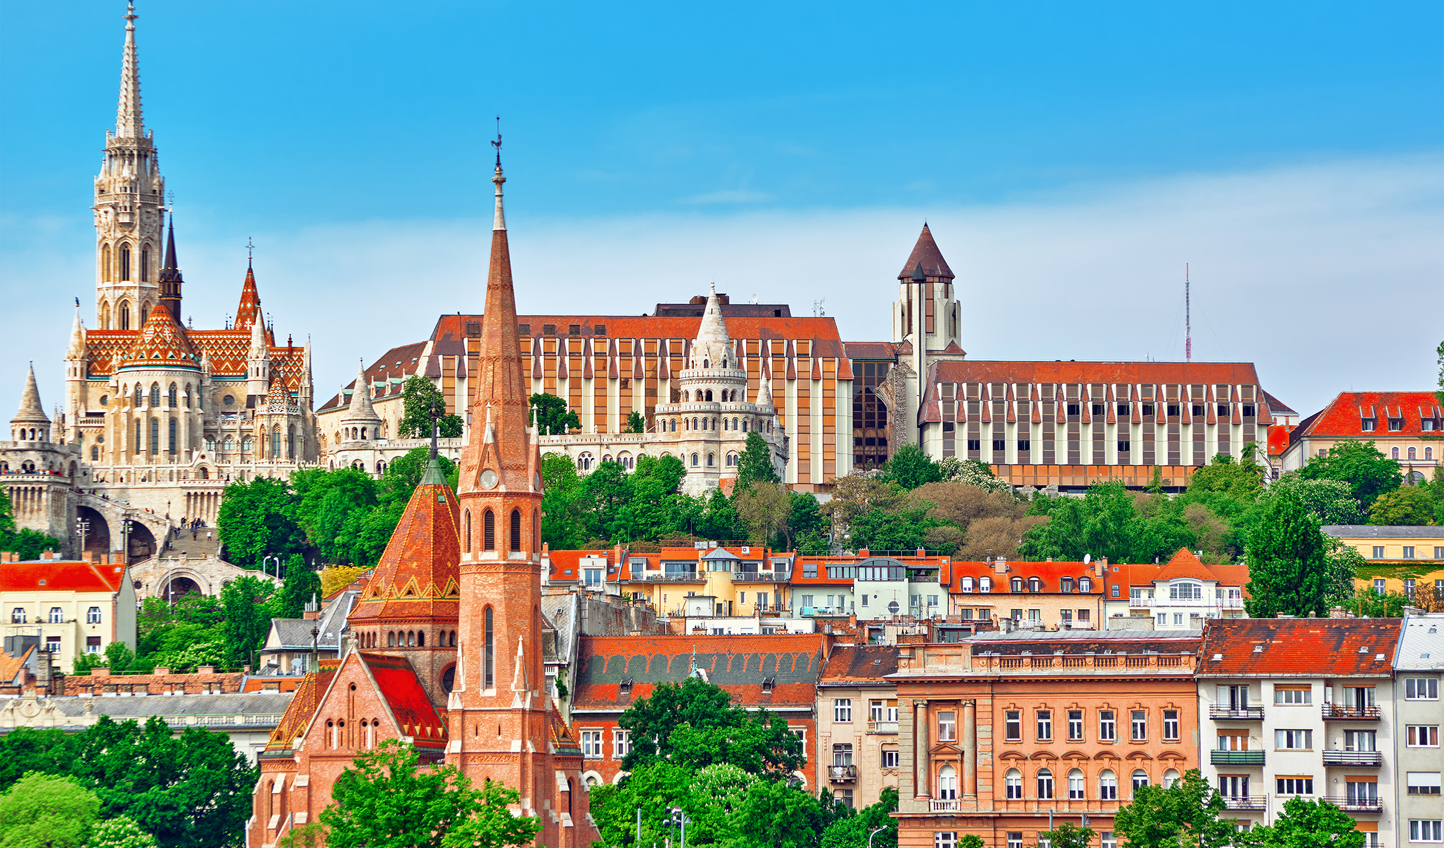 Take in Buda's hilly sights